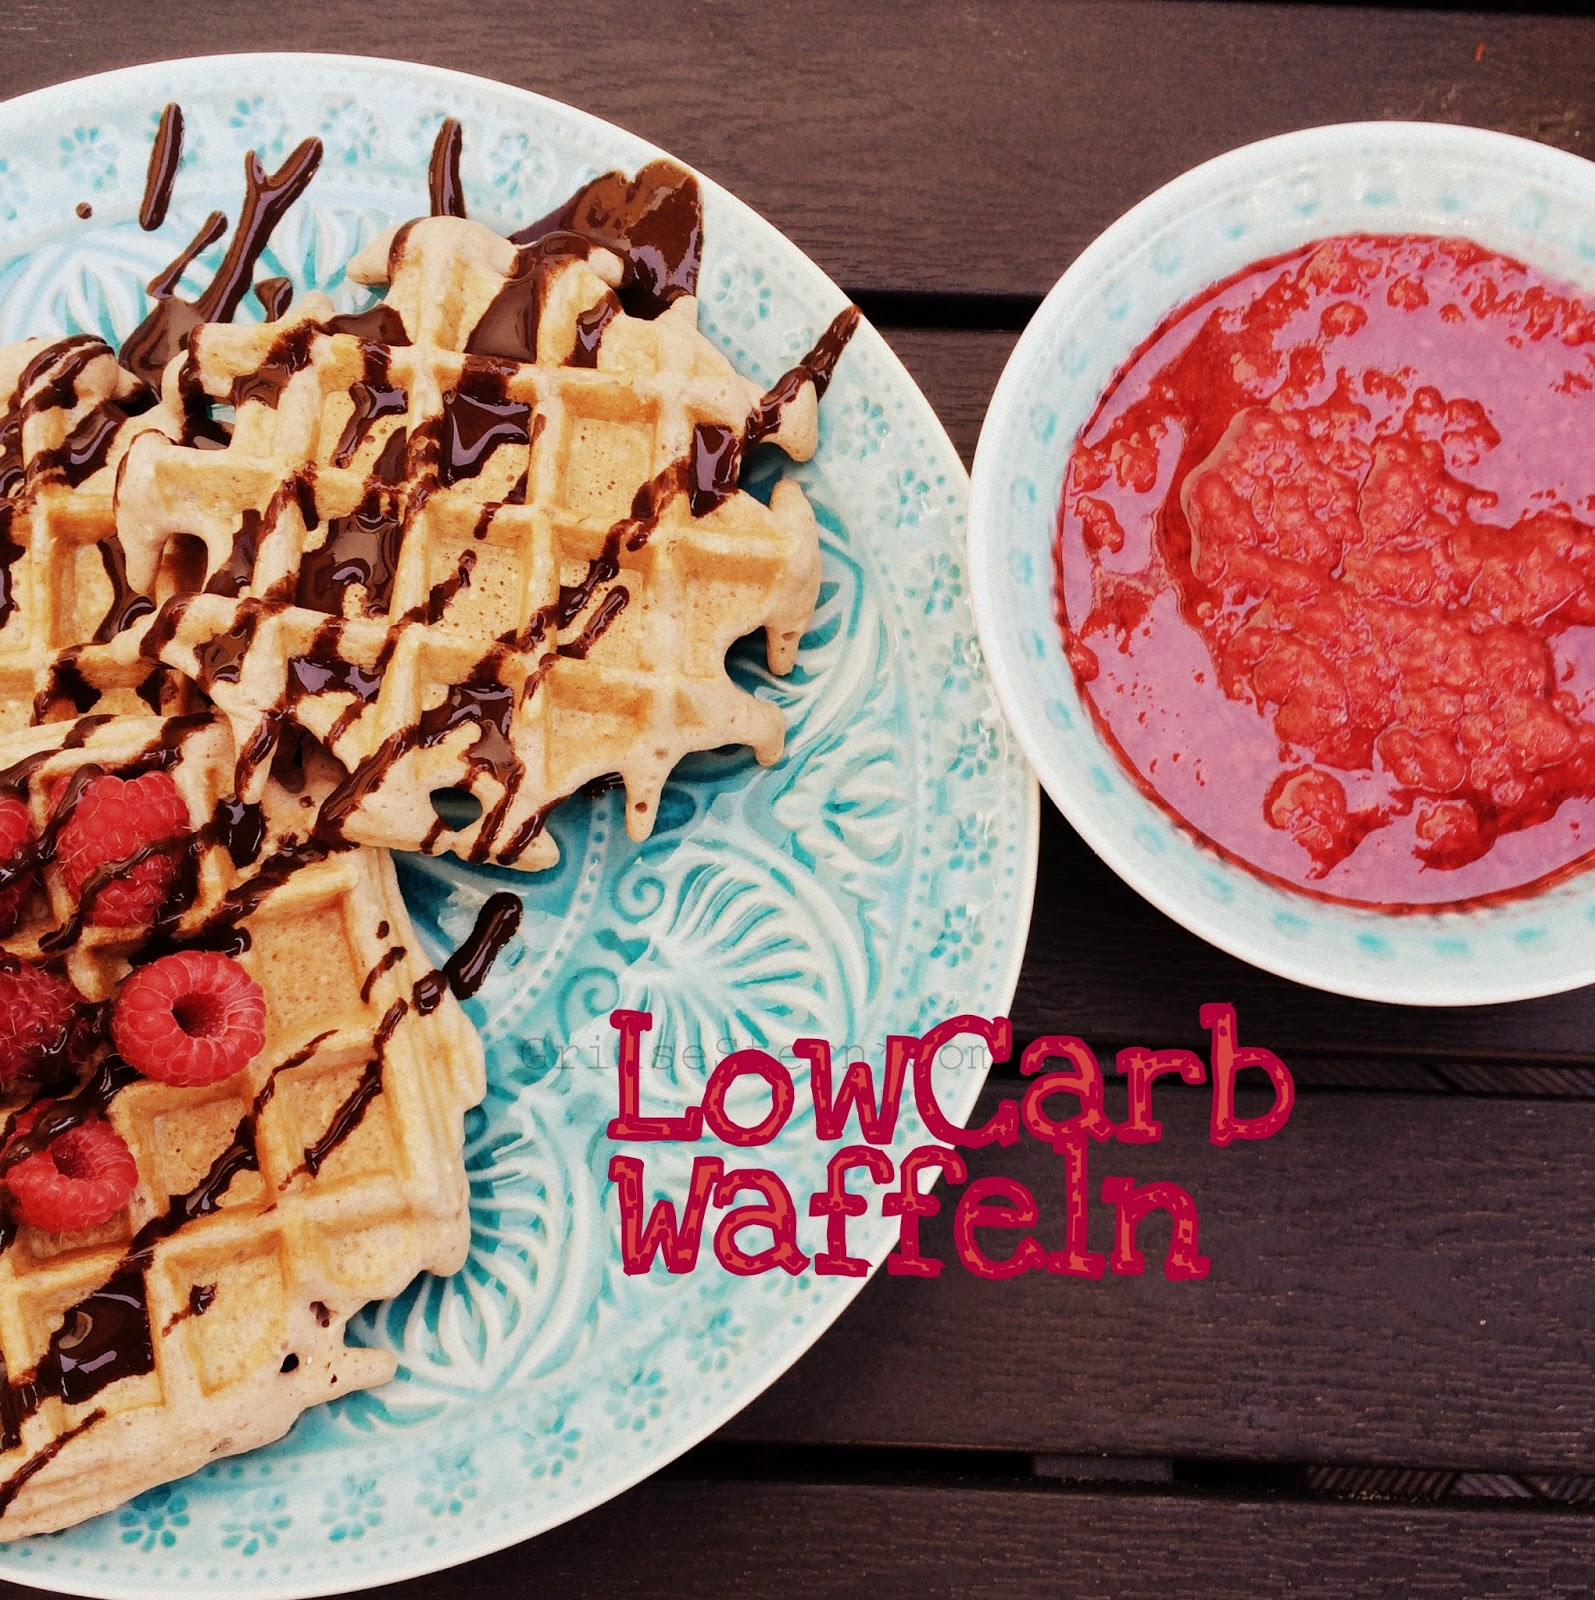 http://www.grinsestern.com/2014/06/low-carb-waffel-rezept-geht-auch-in.html